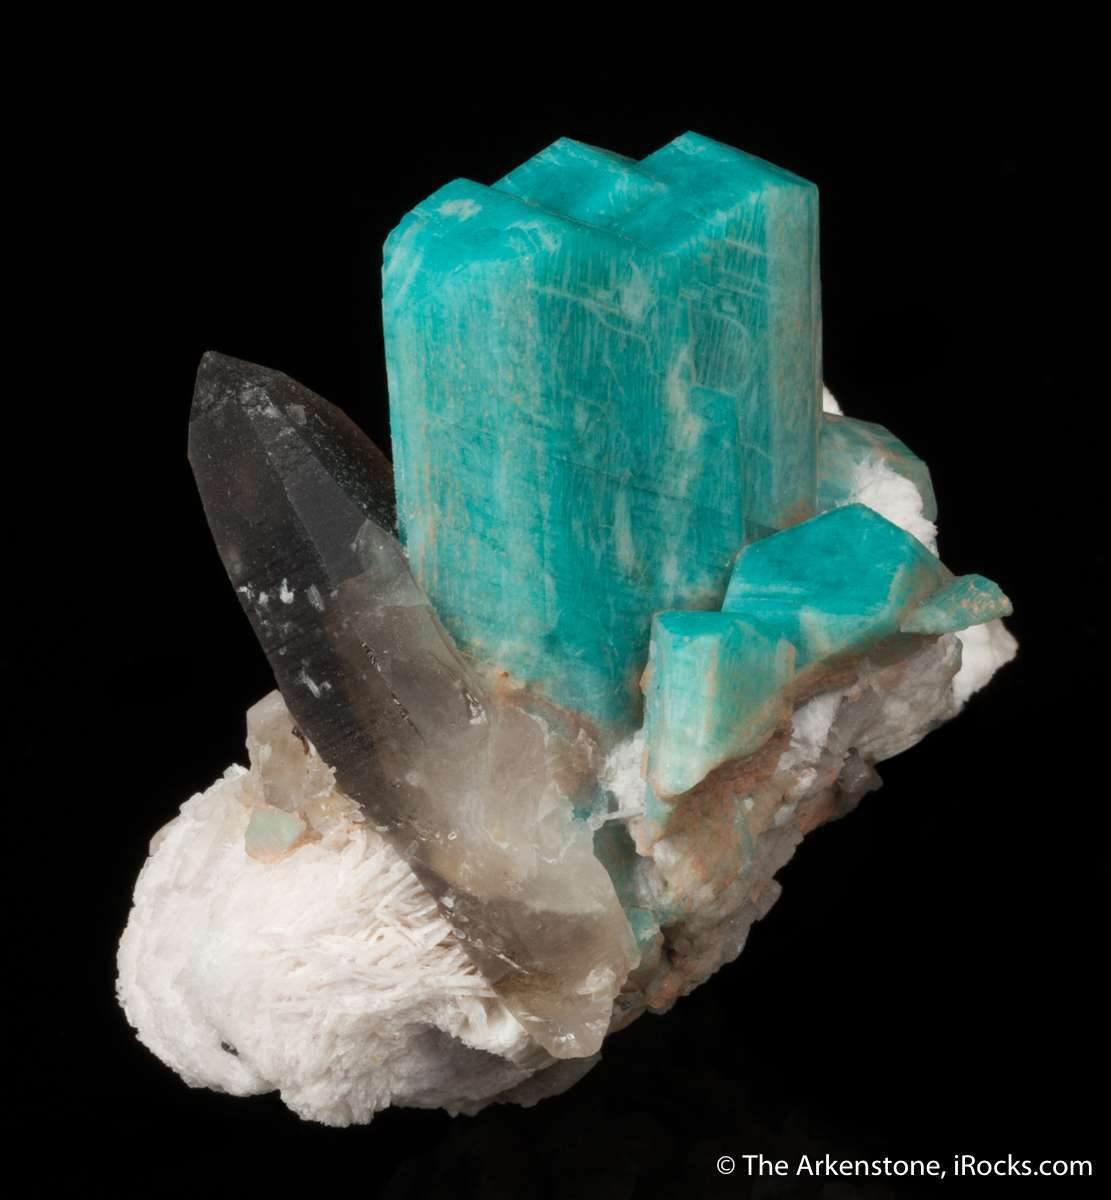 A classic balanced combination big minerals locality unusual aesthetic